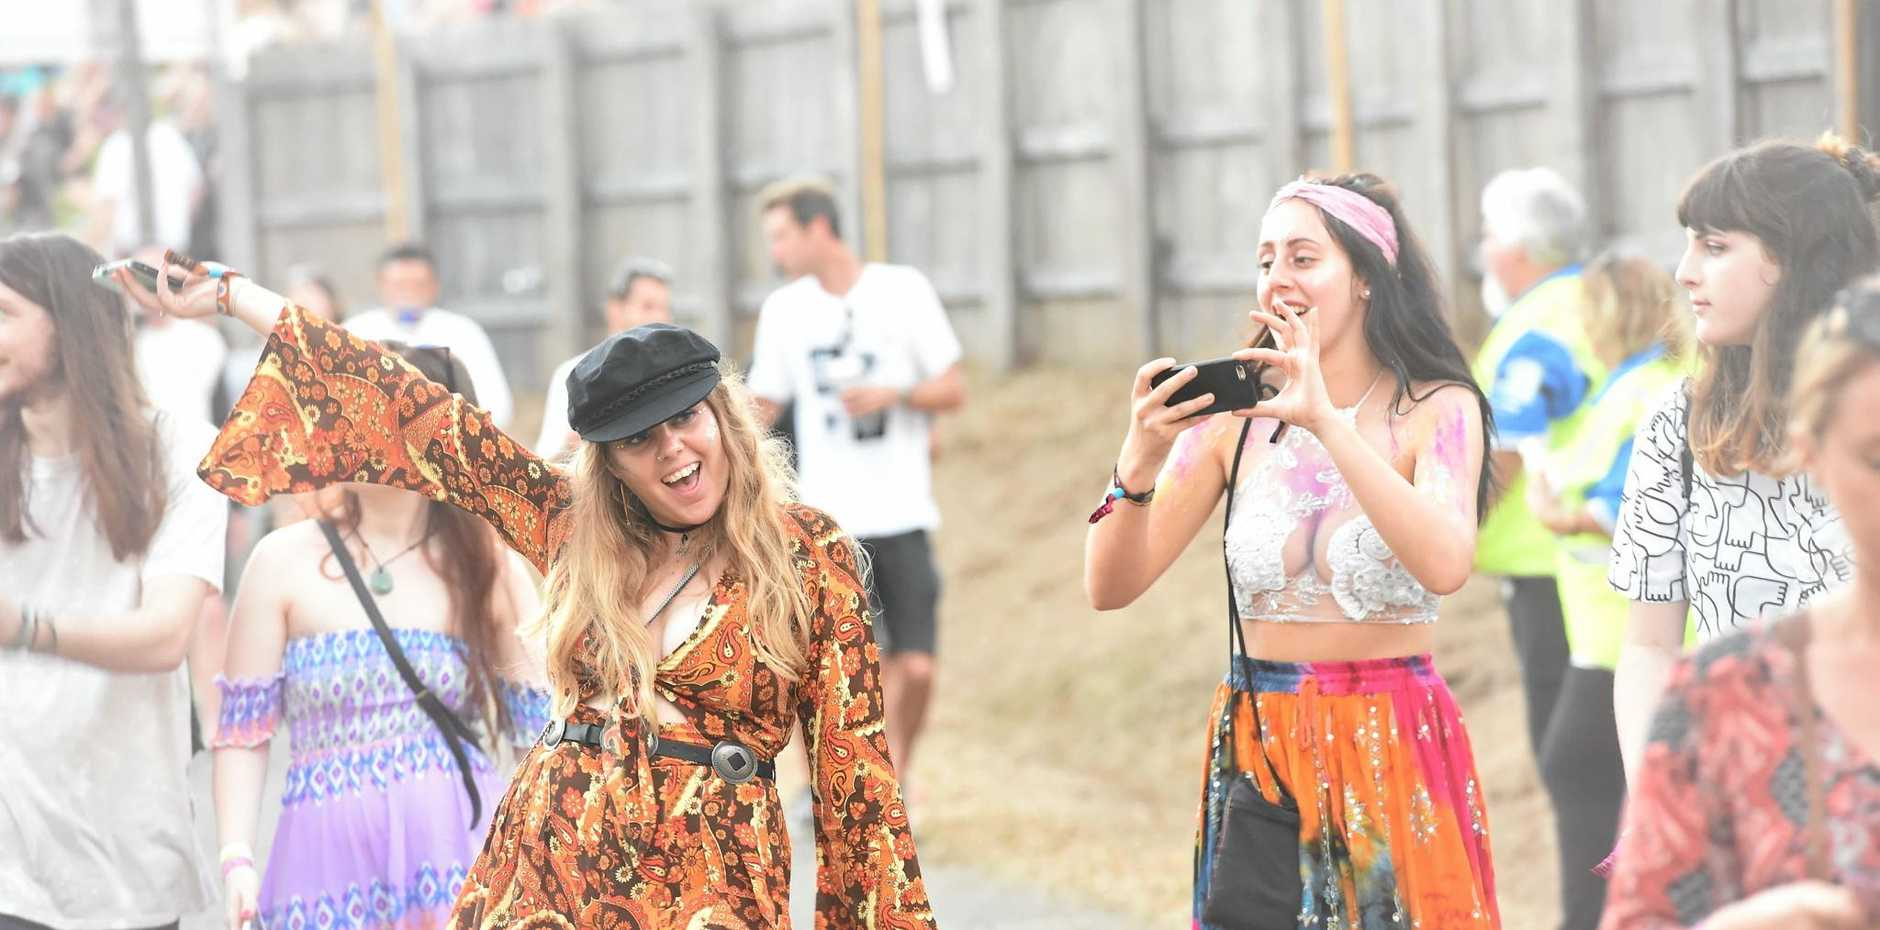 Festival goers sporting various fashions enjoyed themselves at Splendour in the Grass.